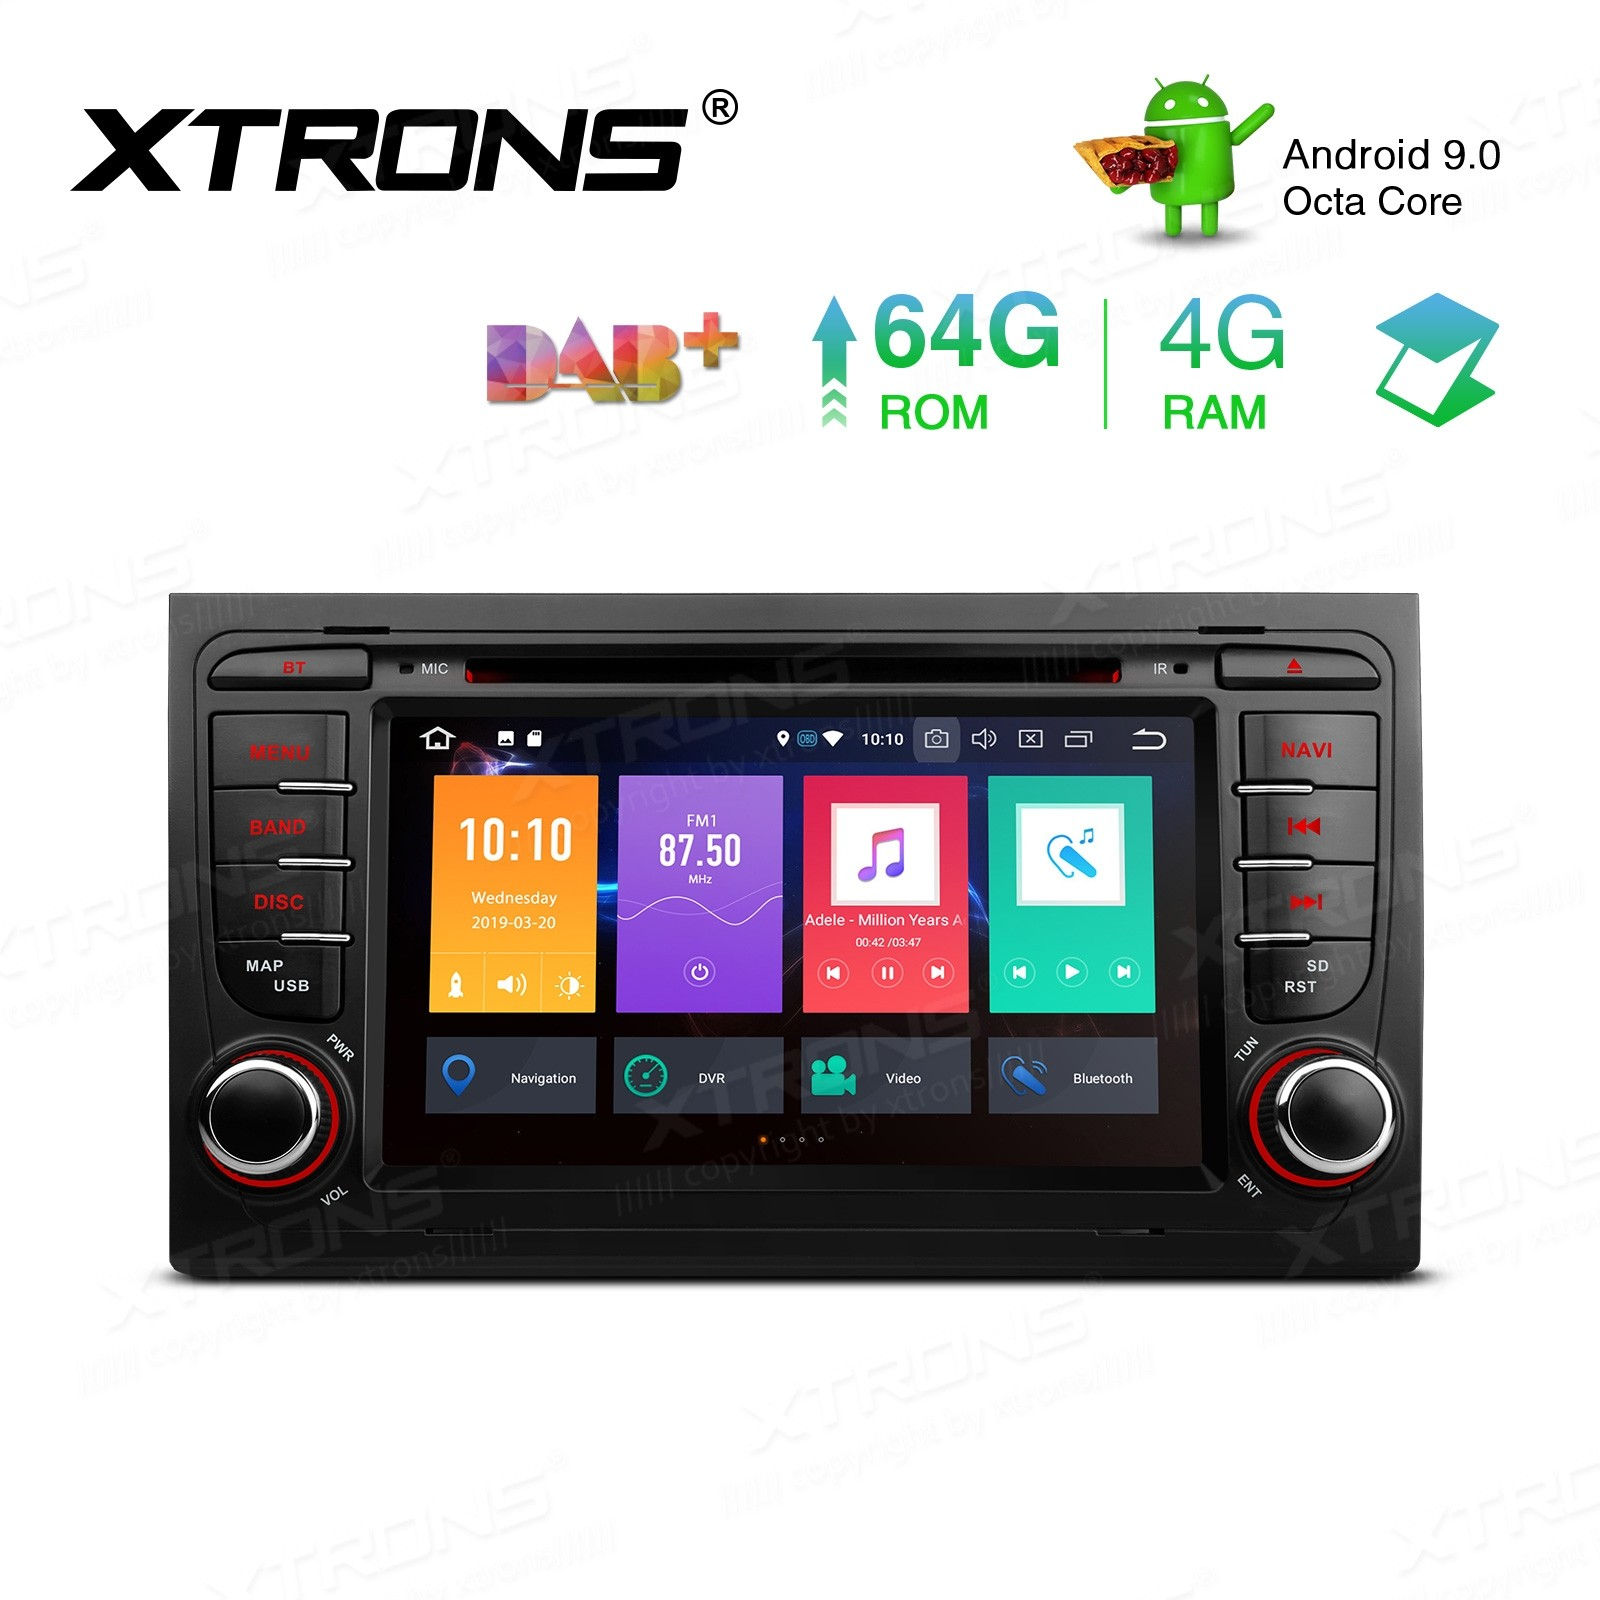 7 inch Android 9.0 Octa-Core 64G ROM + 4G RAM Support CarAutoPlay Car DVD Player Multimedia GPS System Custom fit for Audi